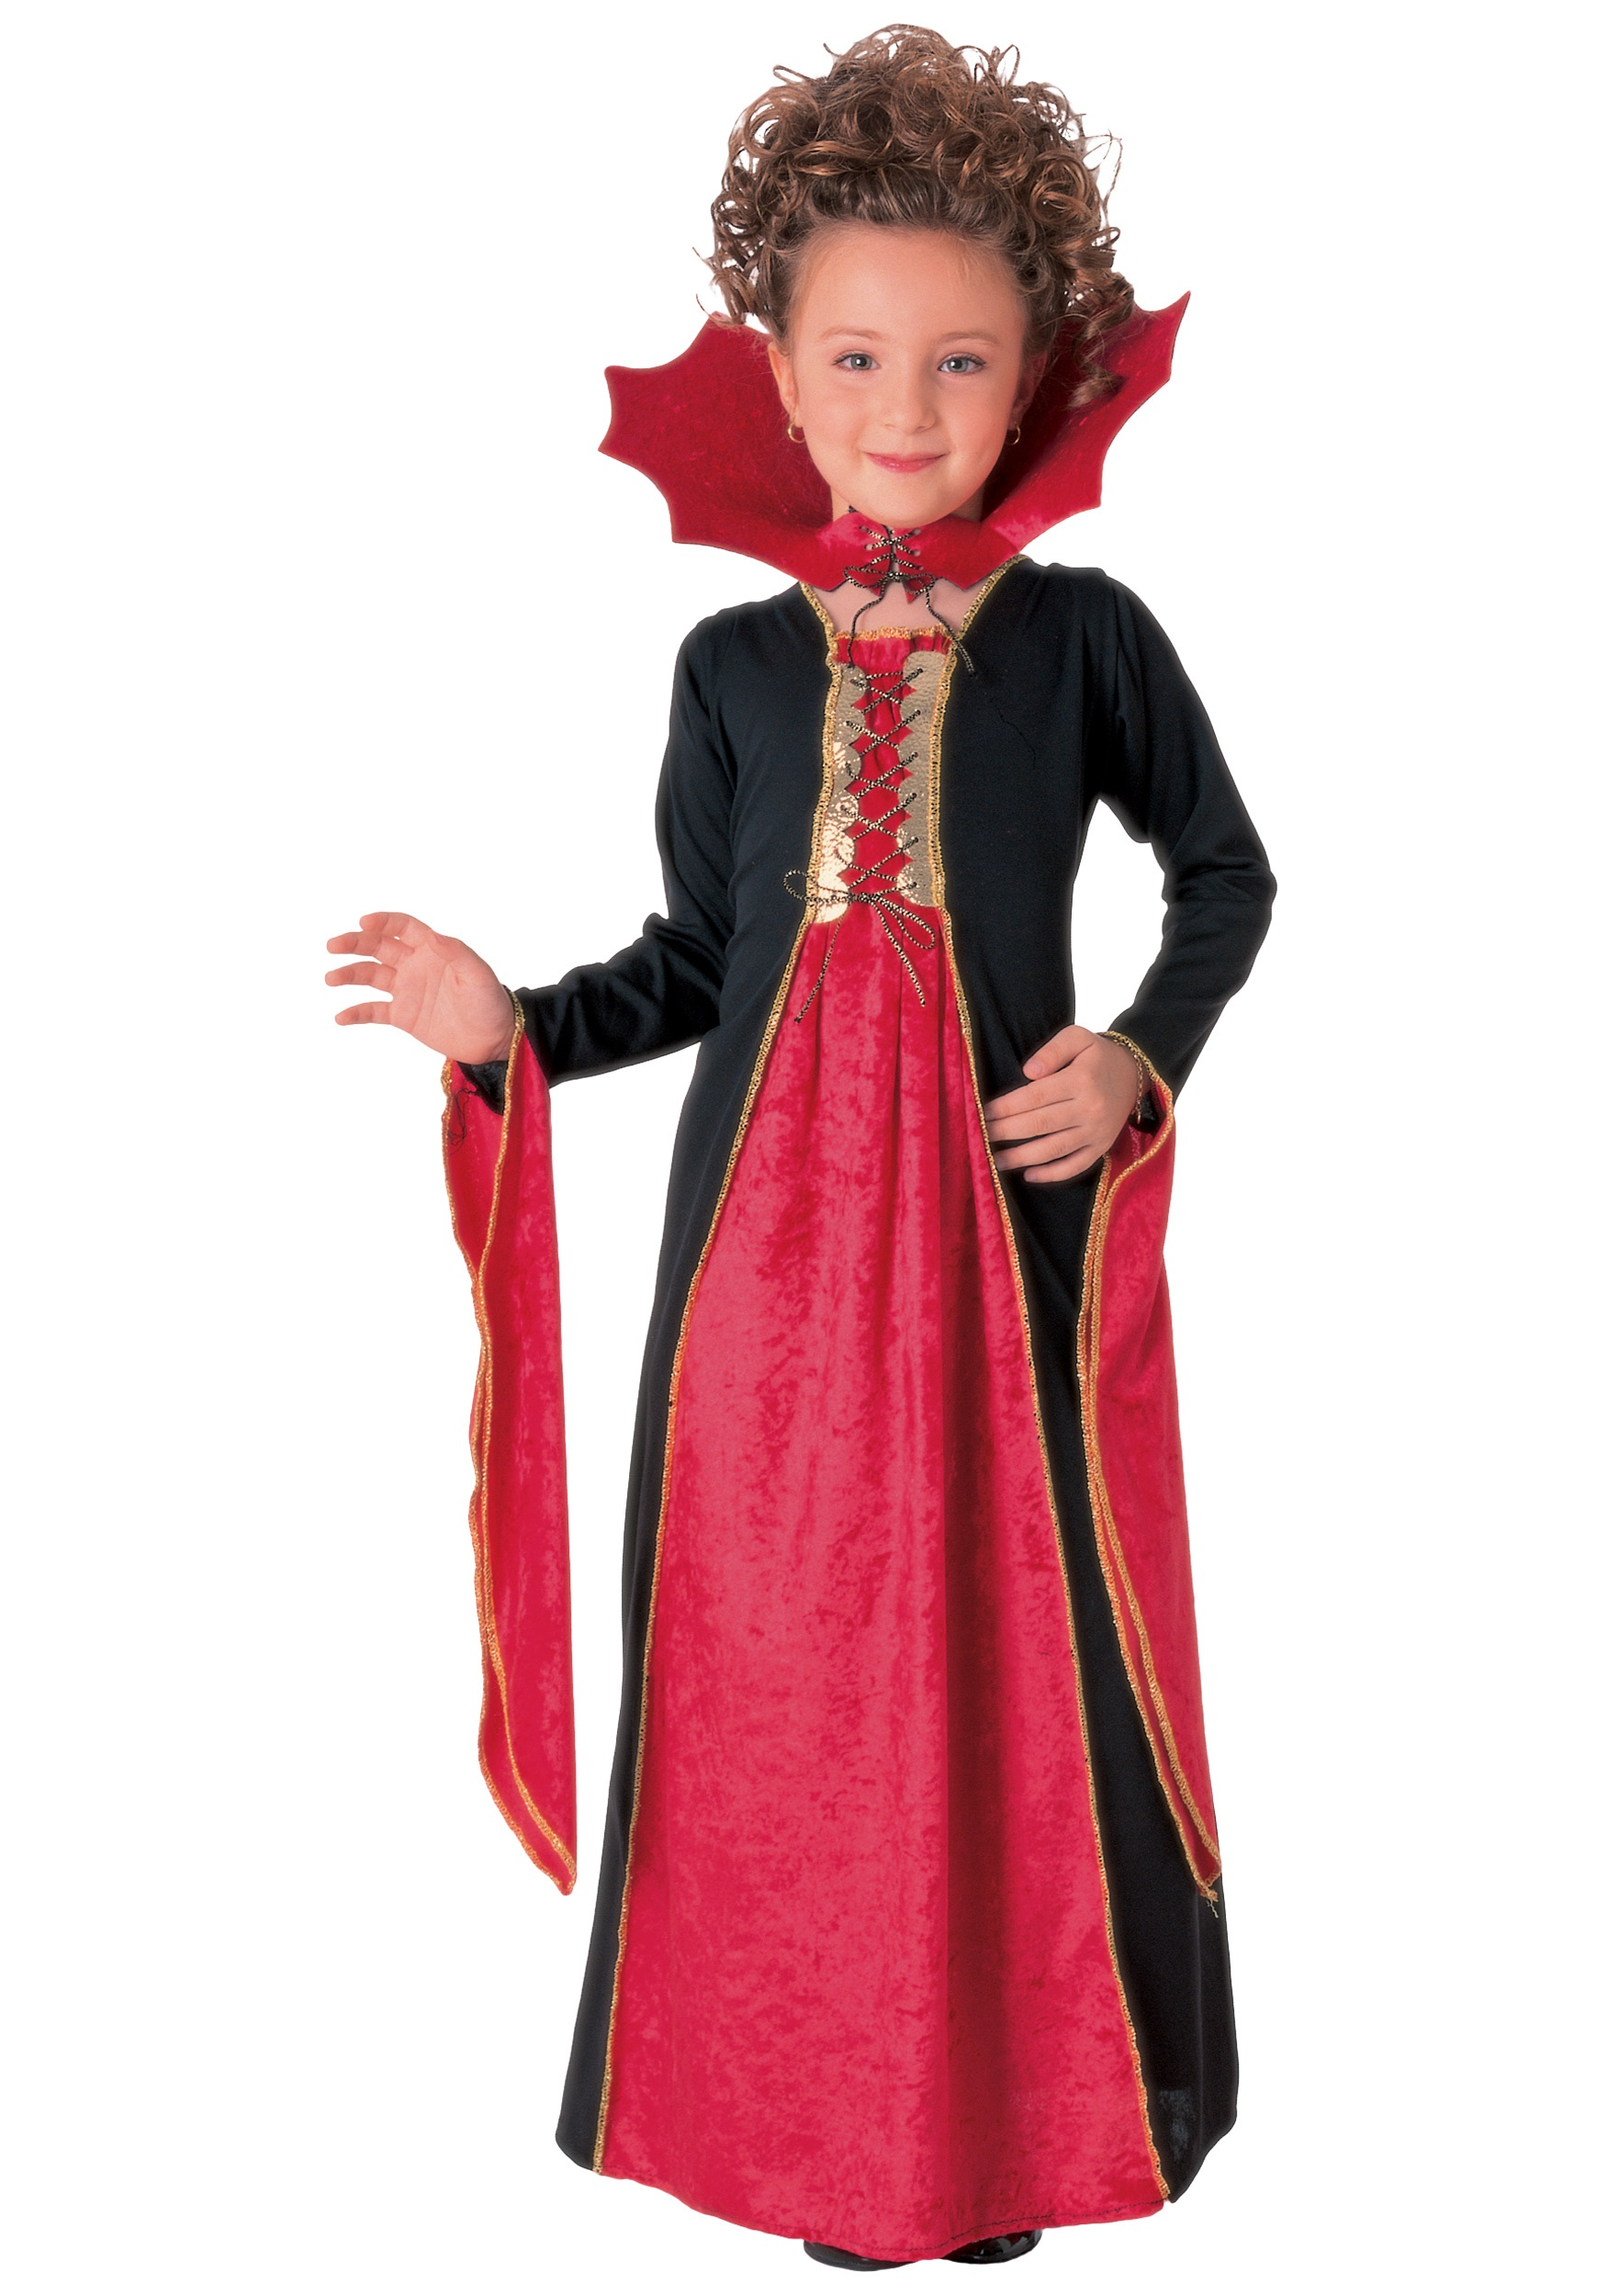 Halloween Vampire Costume Kids.Child Gothic Vampiress Costume